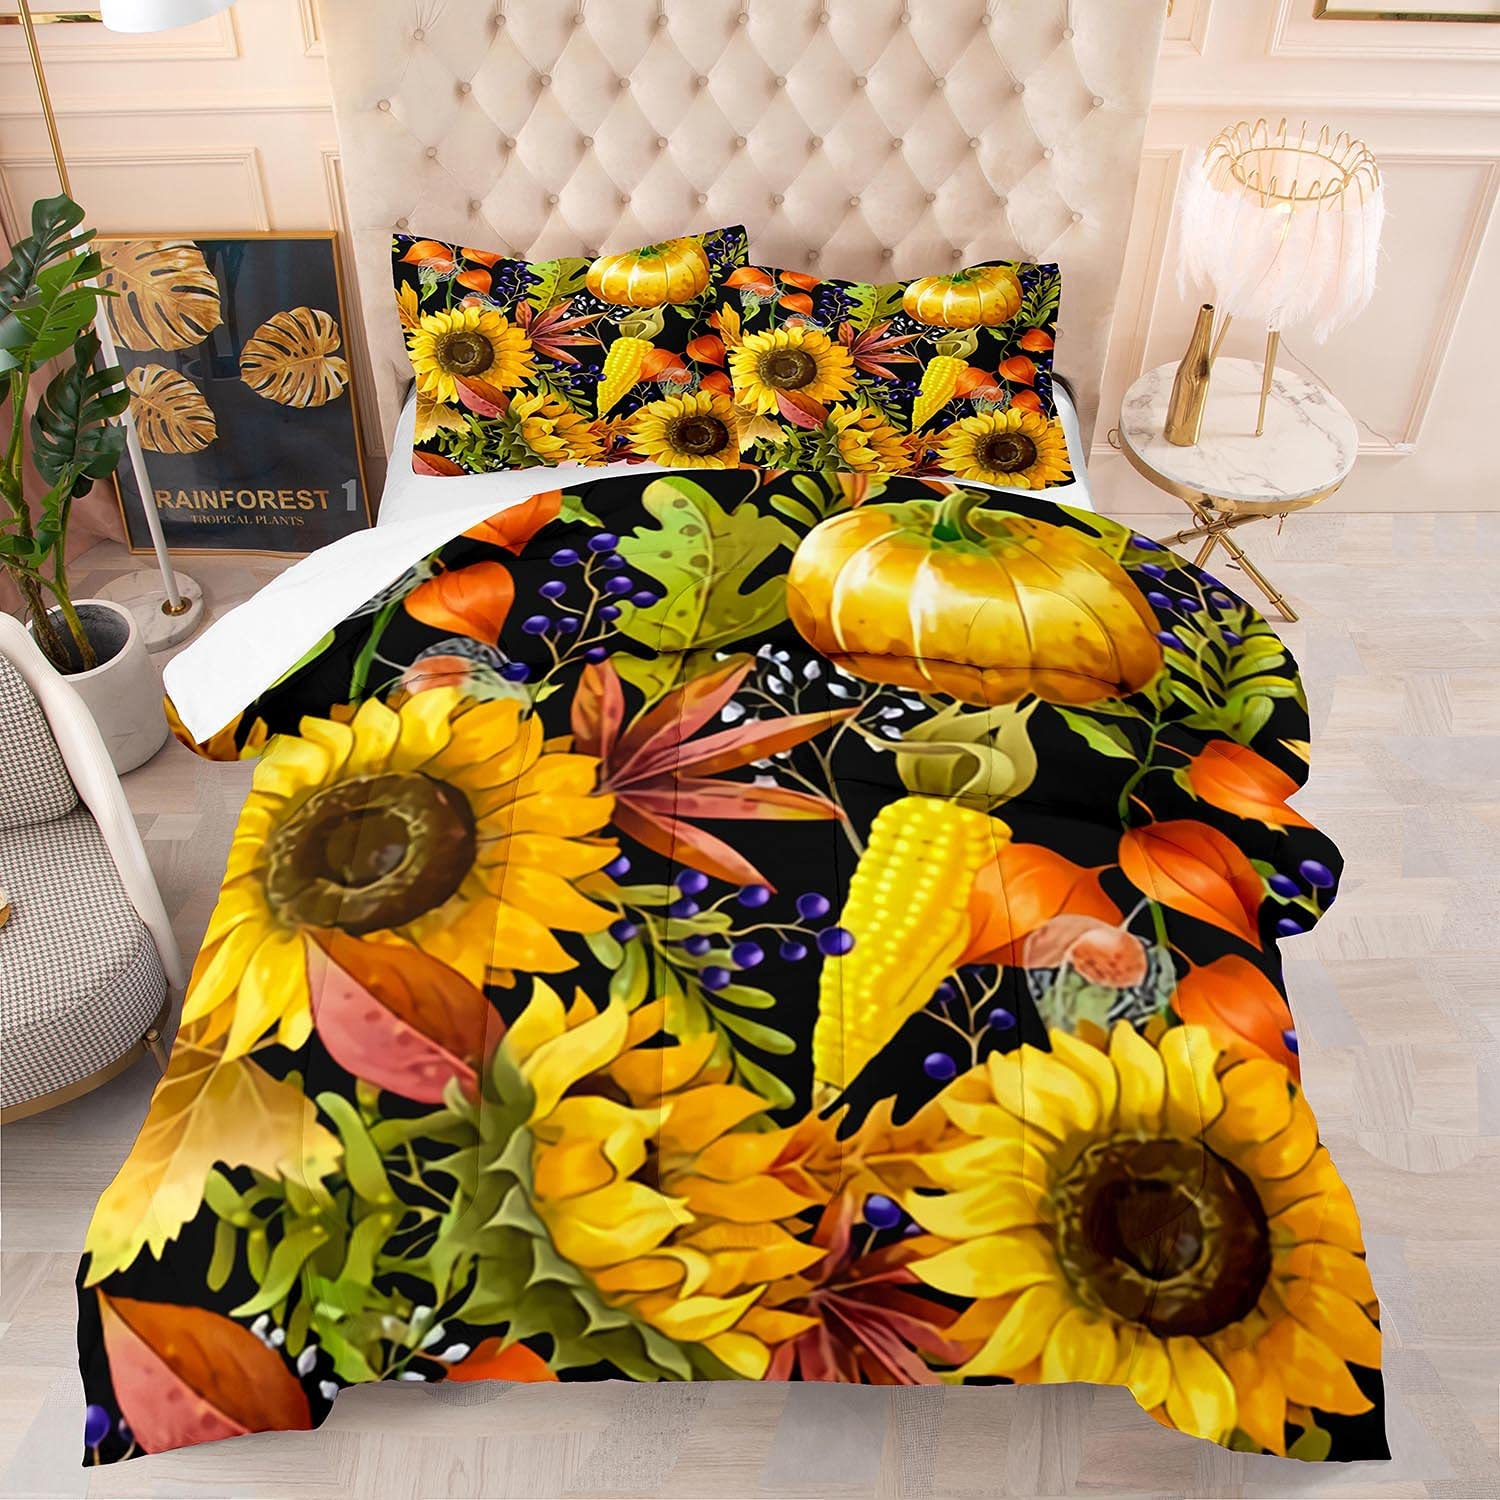 HMT NF Yellow Financial sales sale Sunflower Comforter Set New sales King for Kids Girls Size C